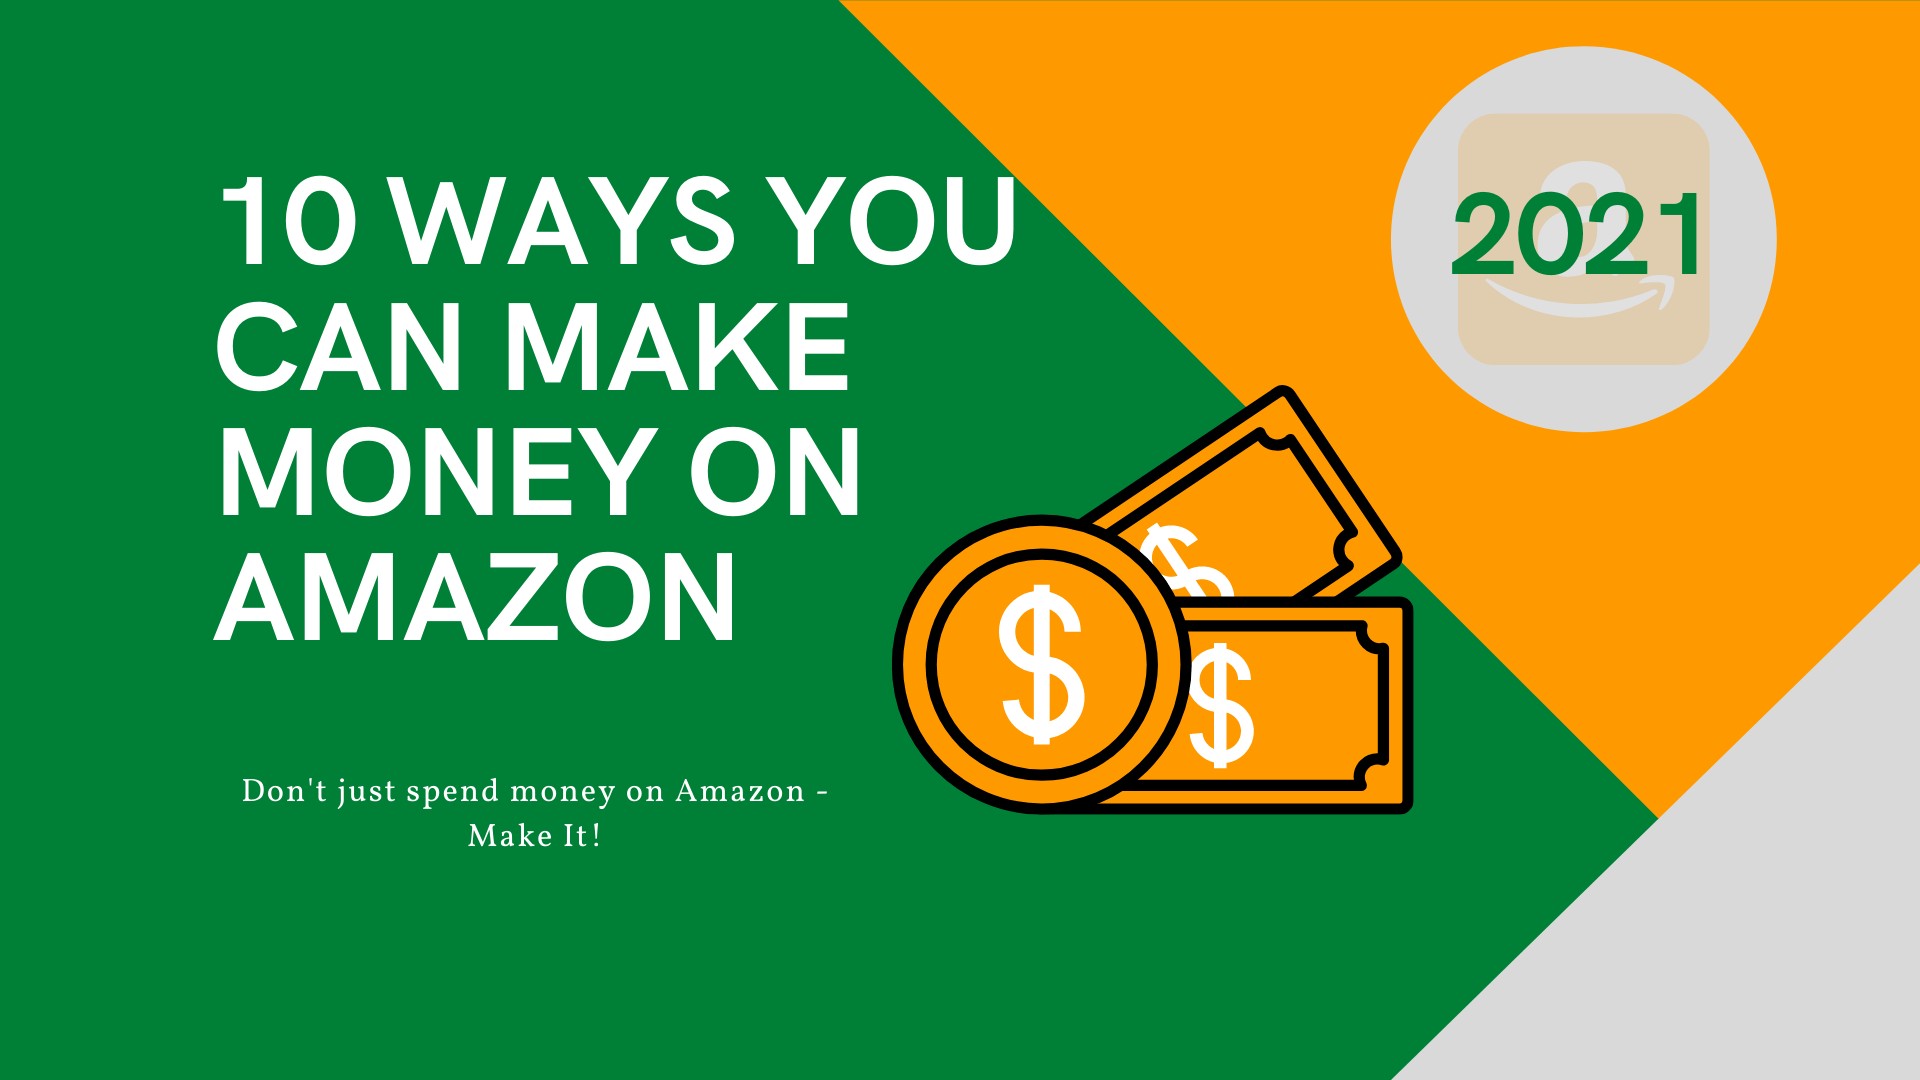 10 ways to make money on amazon in 2021